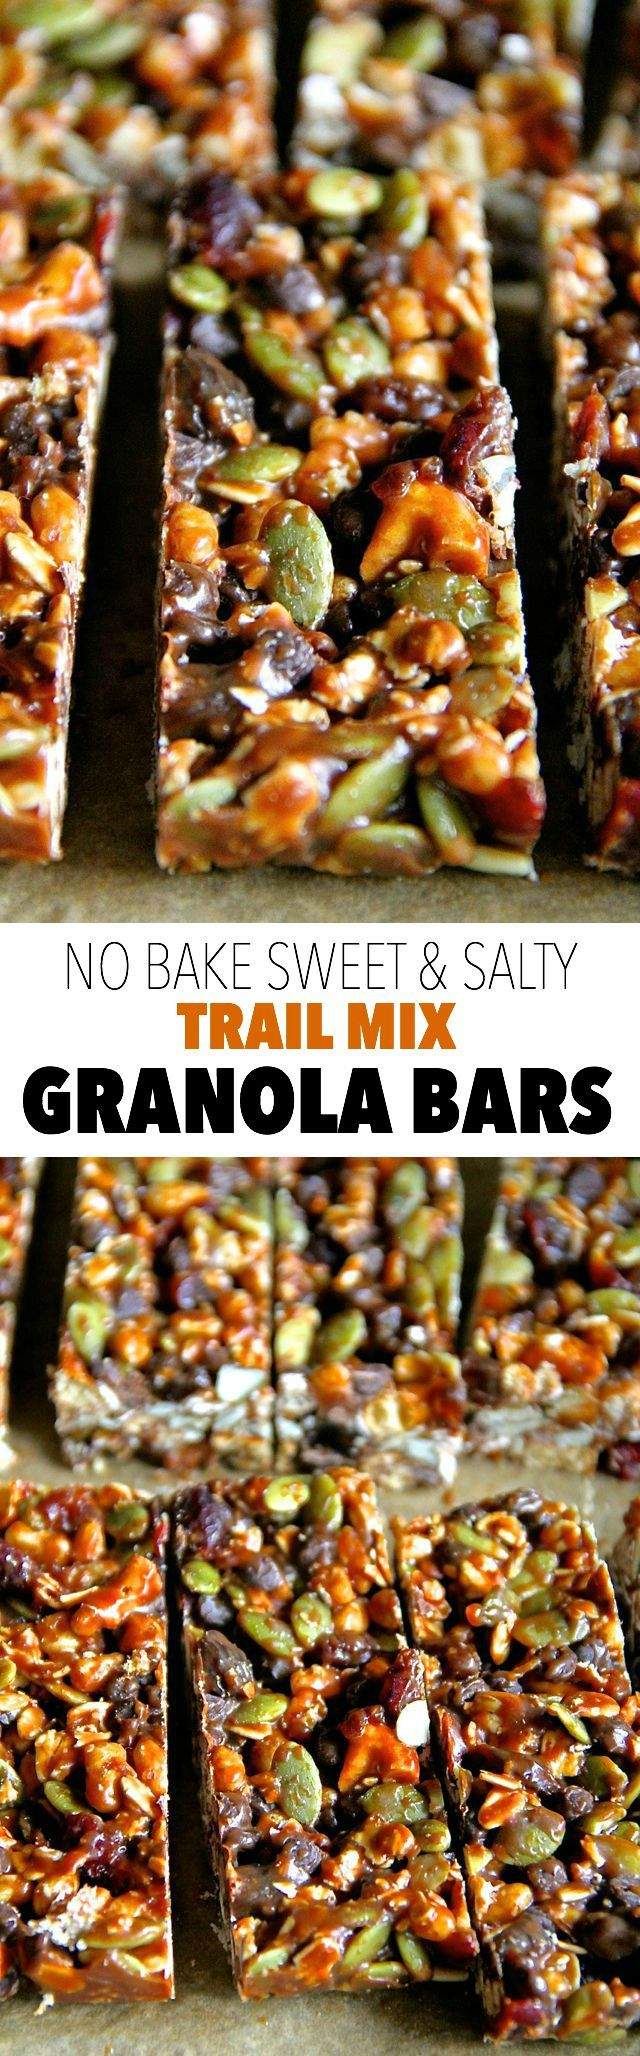 No Bake Trail Mix Granola Bars -- sweet, salty, chewy, and crisp, these granola bars are sure to satisfy any craving!    runningwithspoons.com #glutenfree #vegan